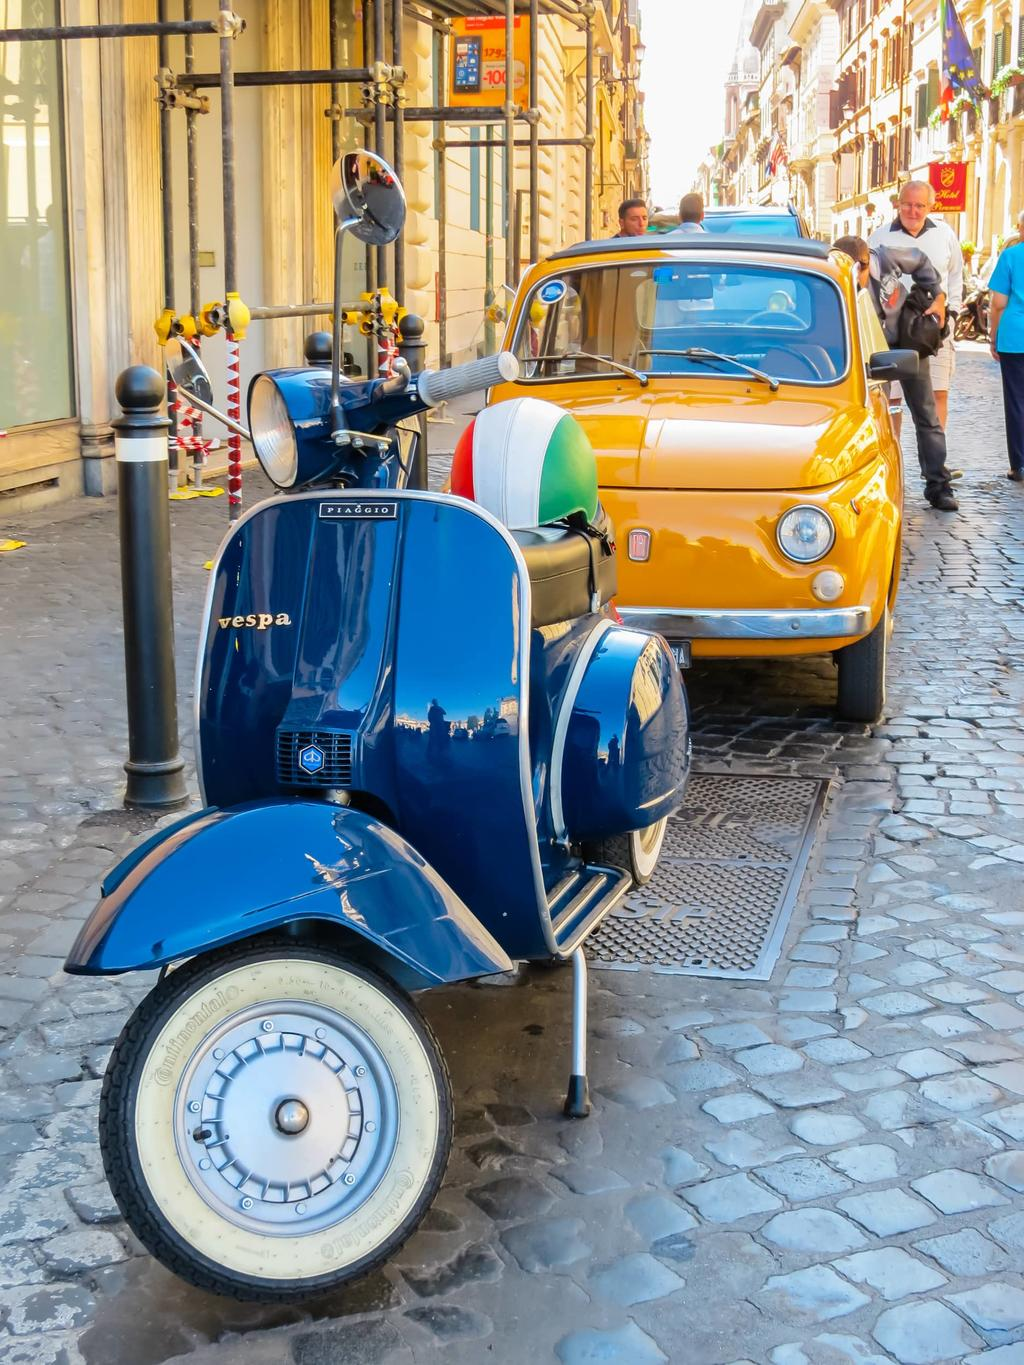 Fiat 500 and Vespa parked in Rome